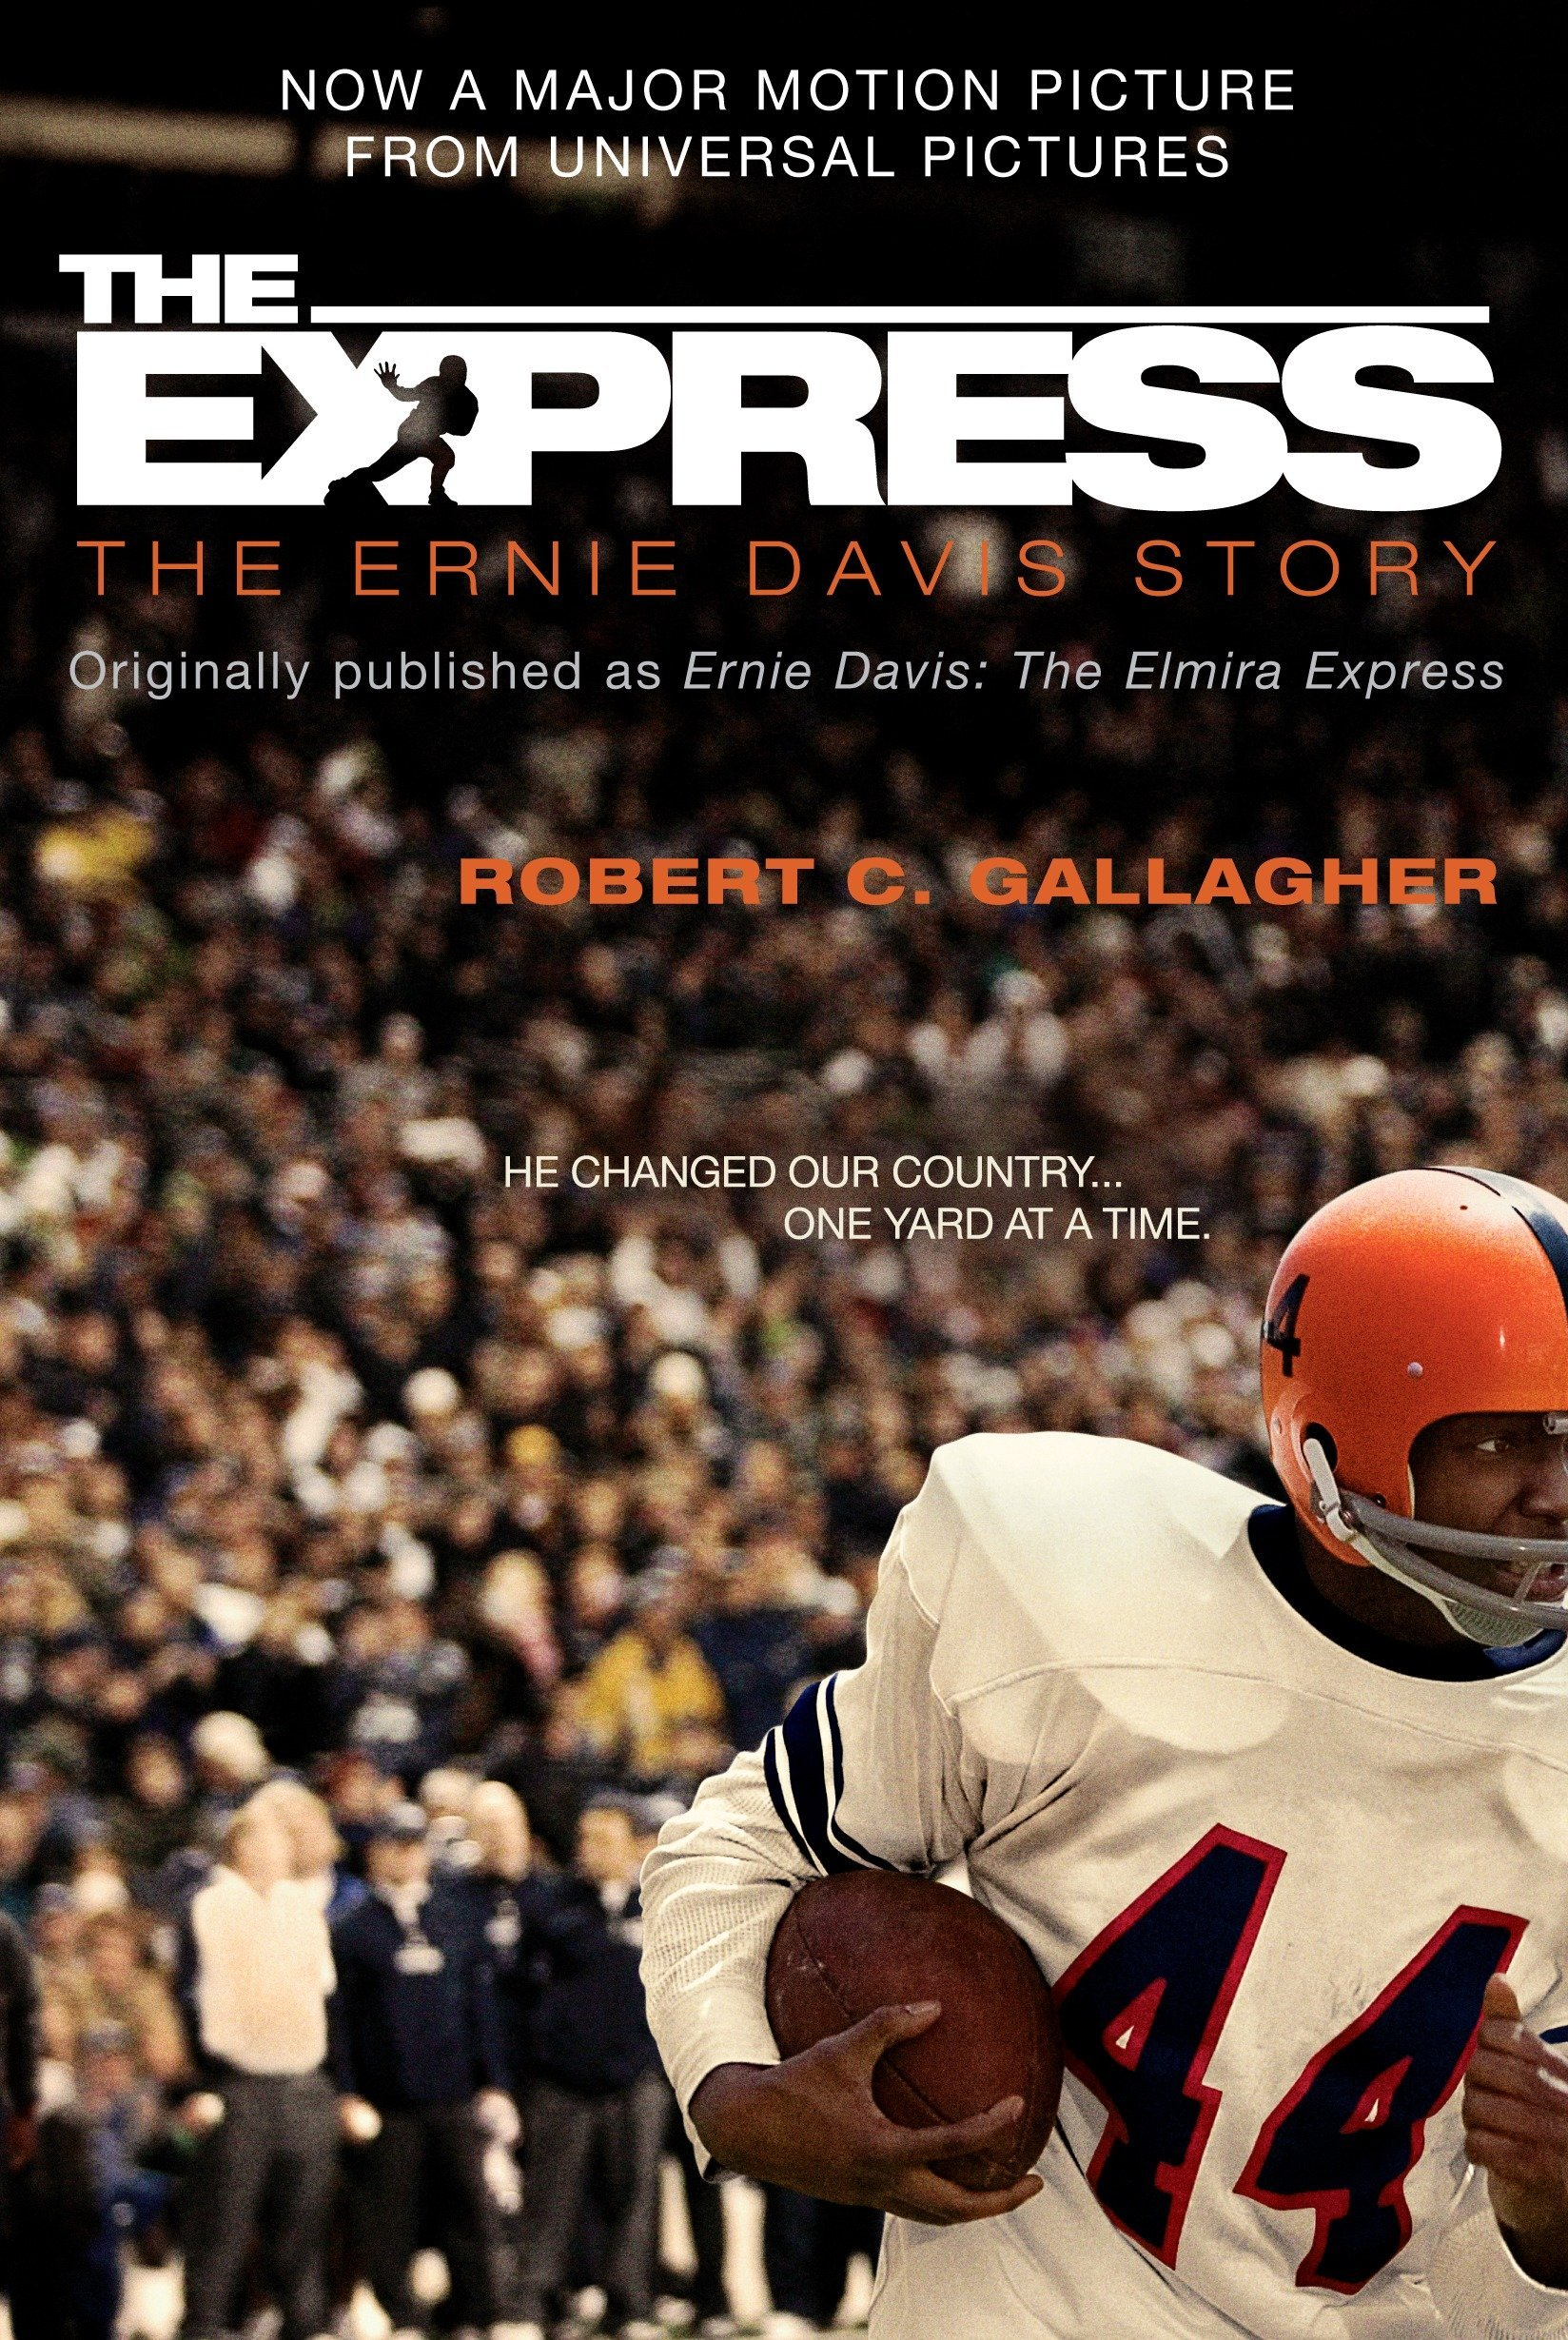 Amazon.com  The Express  The Ernie Davis Story (9780345510860 ... 17710d55e